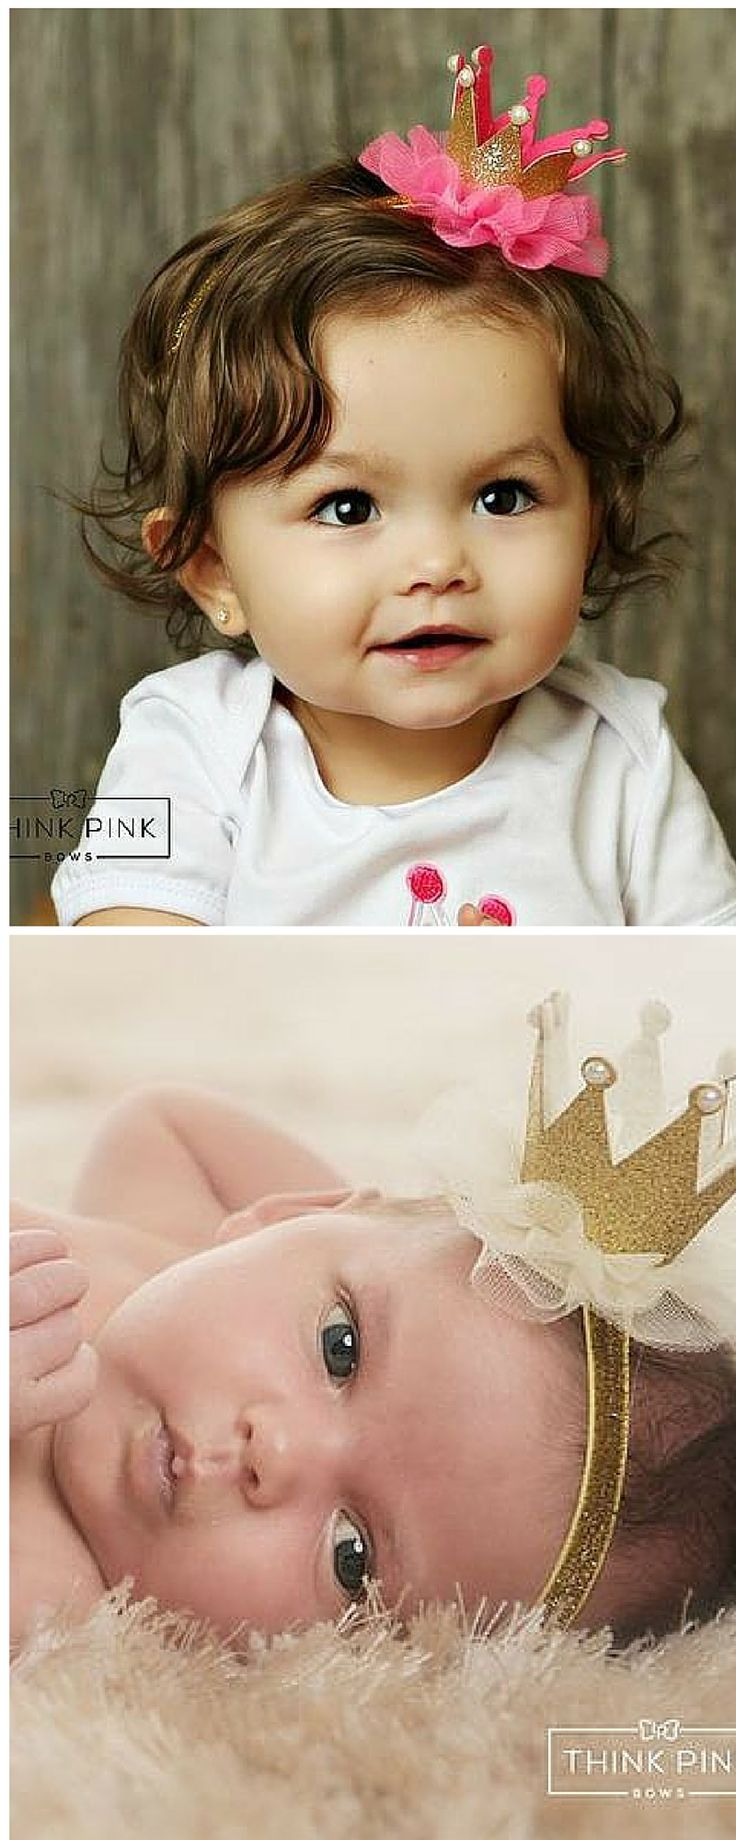 Happy birthday Princess! This  headband features a gold sparkly glitter foam crown accented with pearls and placed on ruffled tulle. It backed on felt for extra comfort and then attached to a soft and stretchy elastic headband. Explore hairbands for  newborn babies at http://thinkpinkbows.com/collections/petite-headbands/products/royal-majesty-glitter-crown-headband-6-colors-available?variant=15841025603 | Kids Fashion